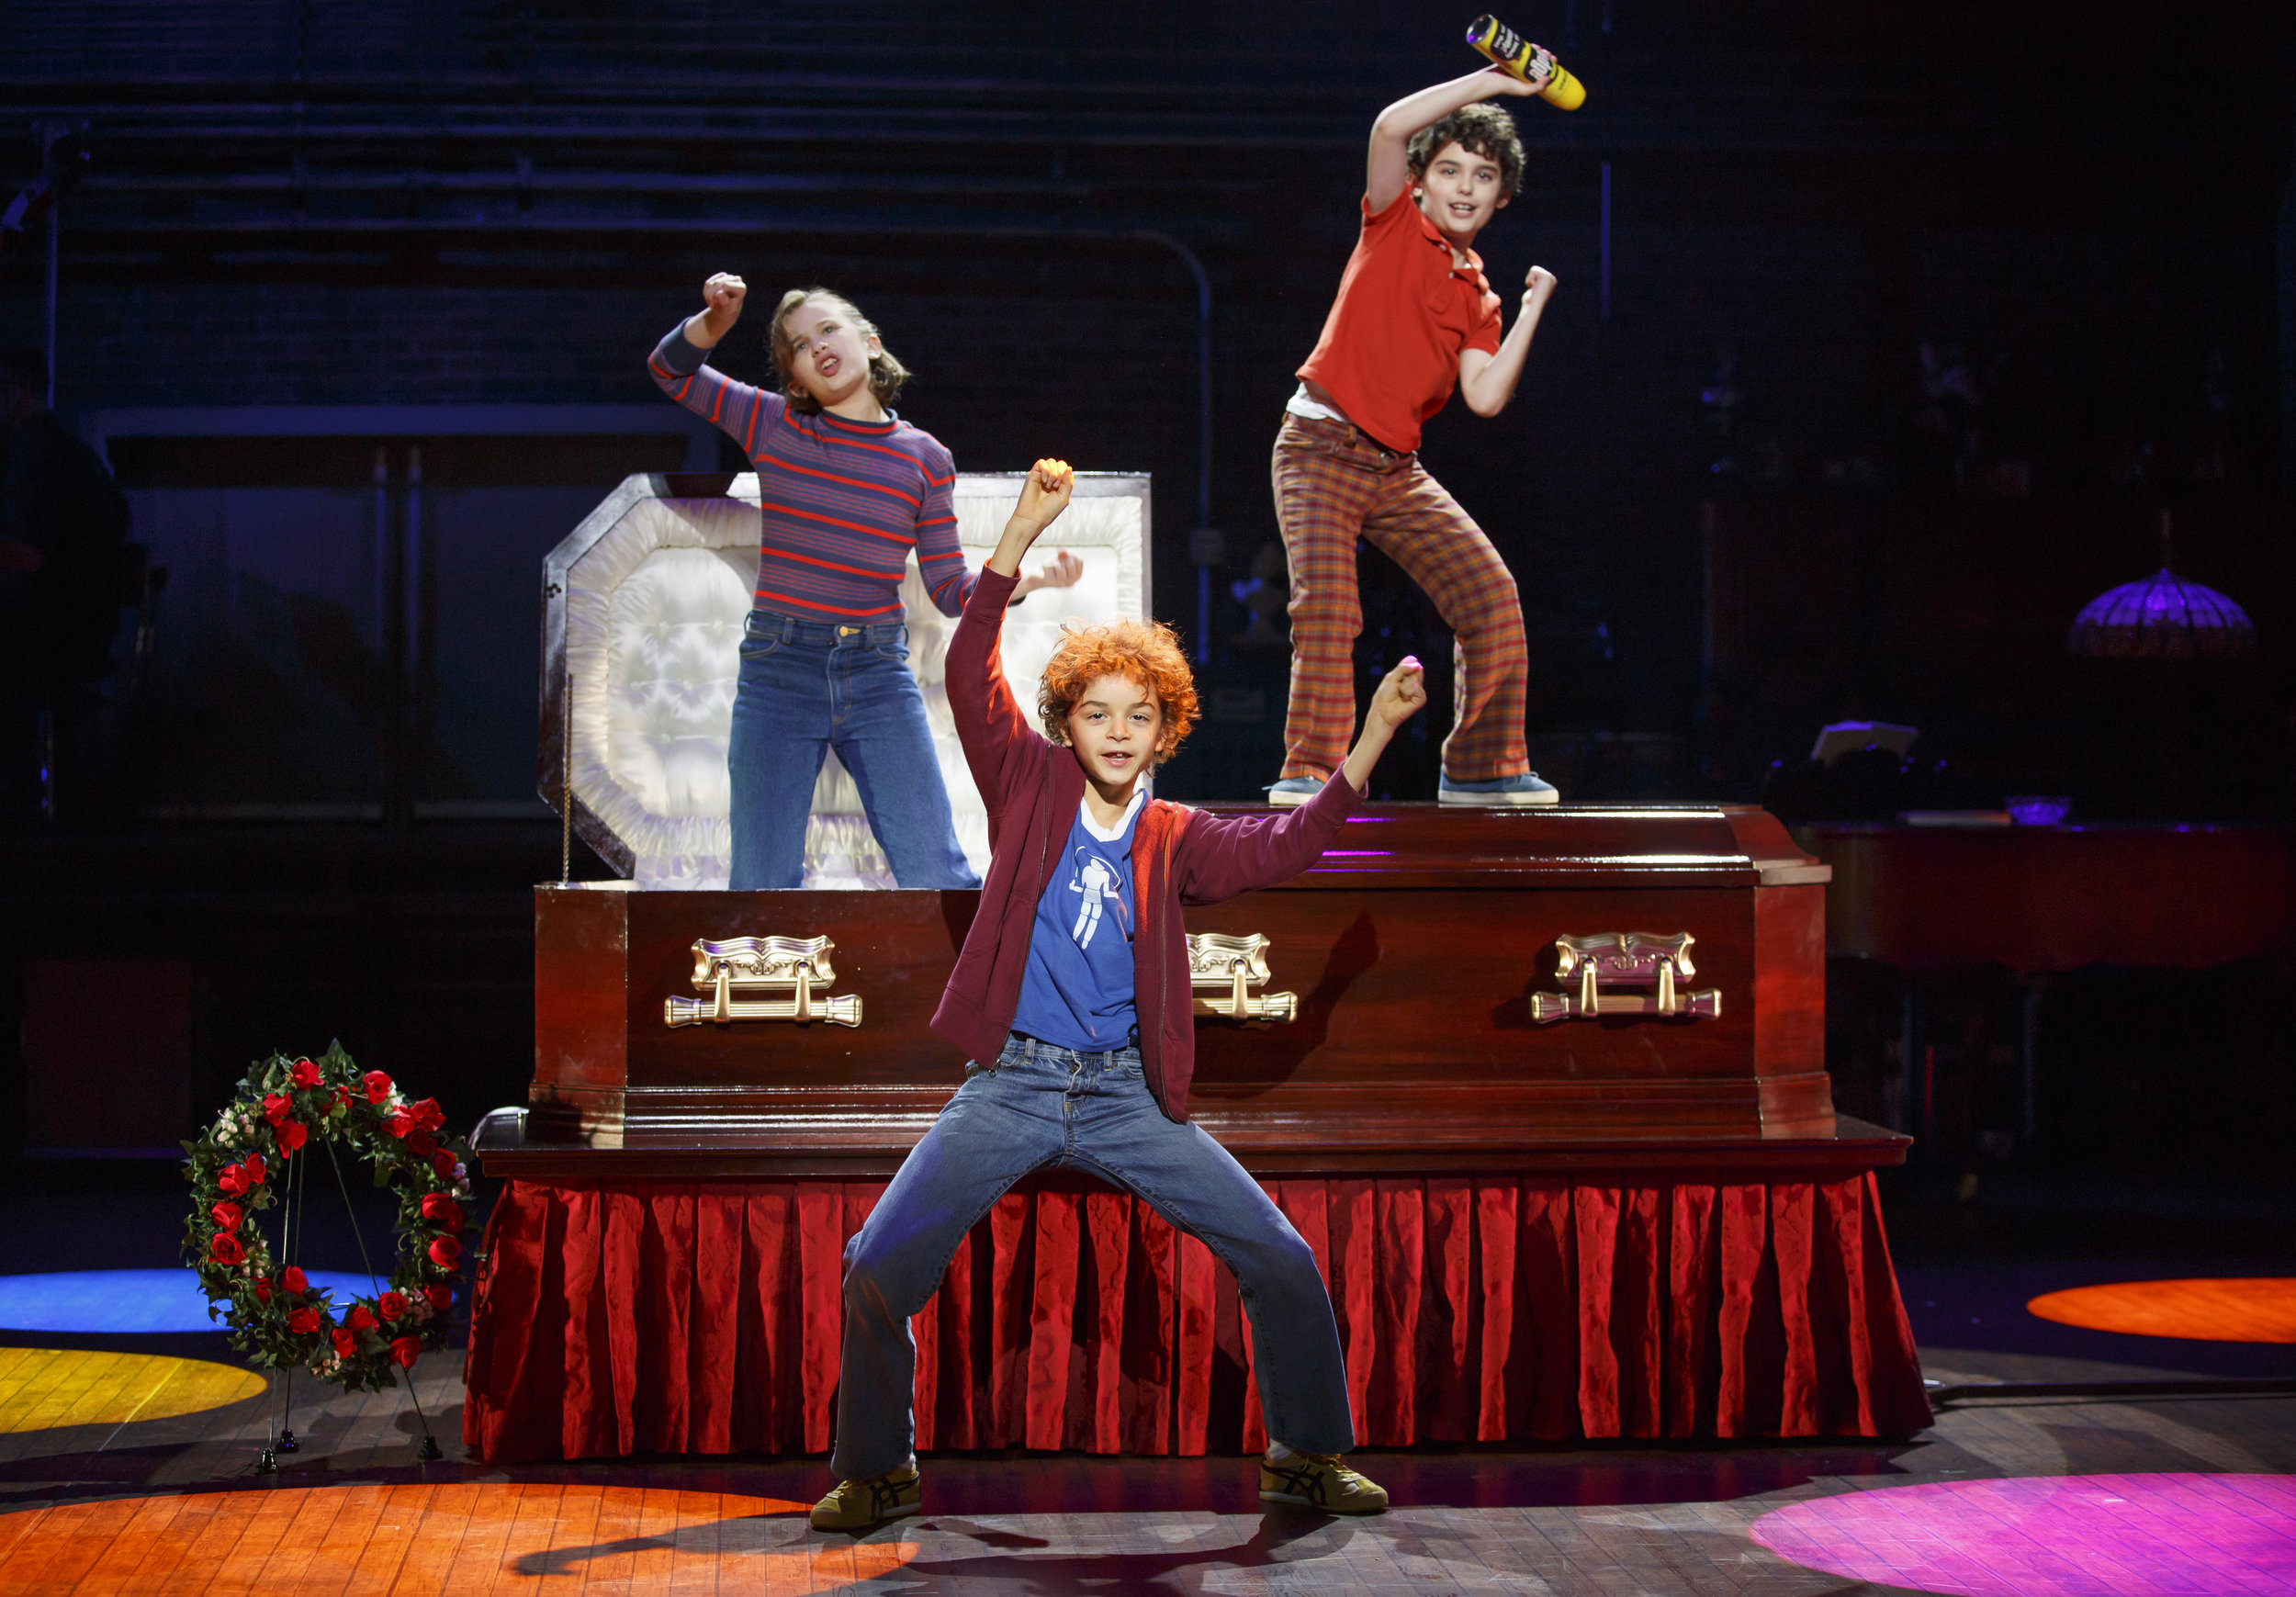 Unexpectedly one of my favorite scenes. These kids are beyond adorable and wholeheartedly invested in putting the fun in  Fun Home . It's a treat to watch them having such a great time. And their 70s inspired dance moves are AH-mazing!